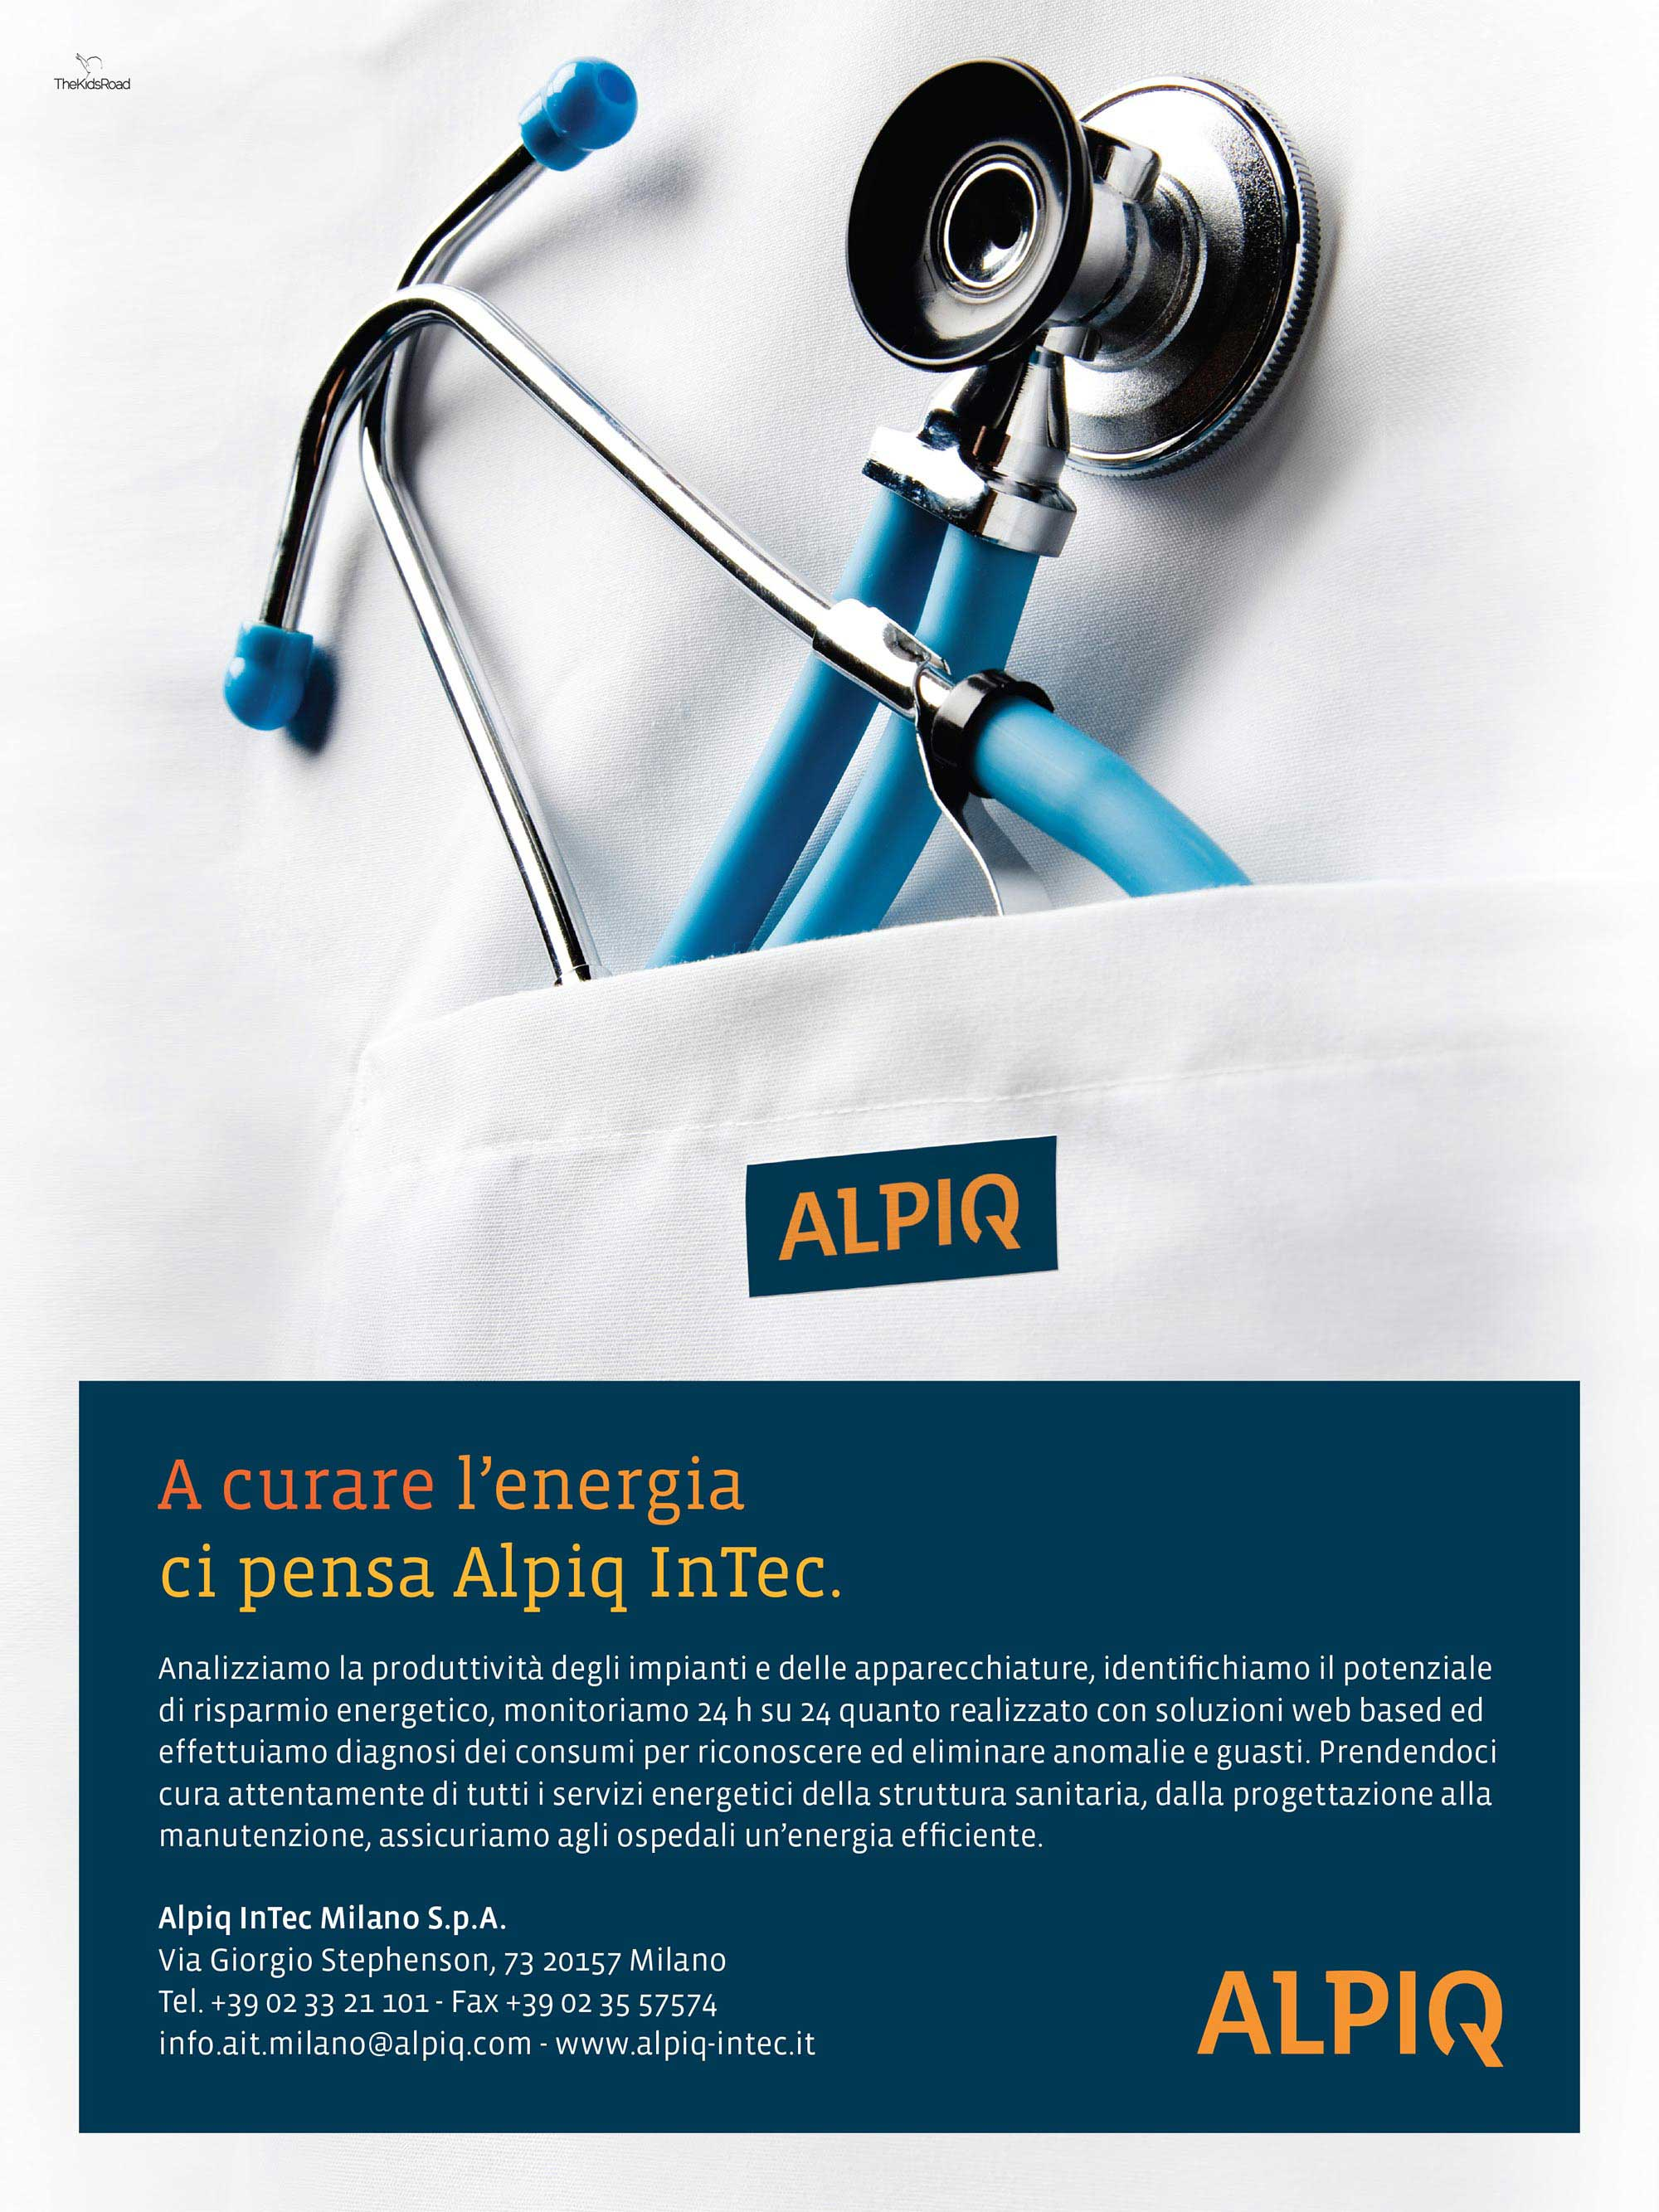 Alpiq InTech Italia